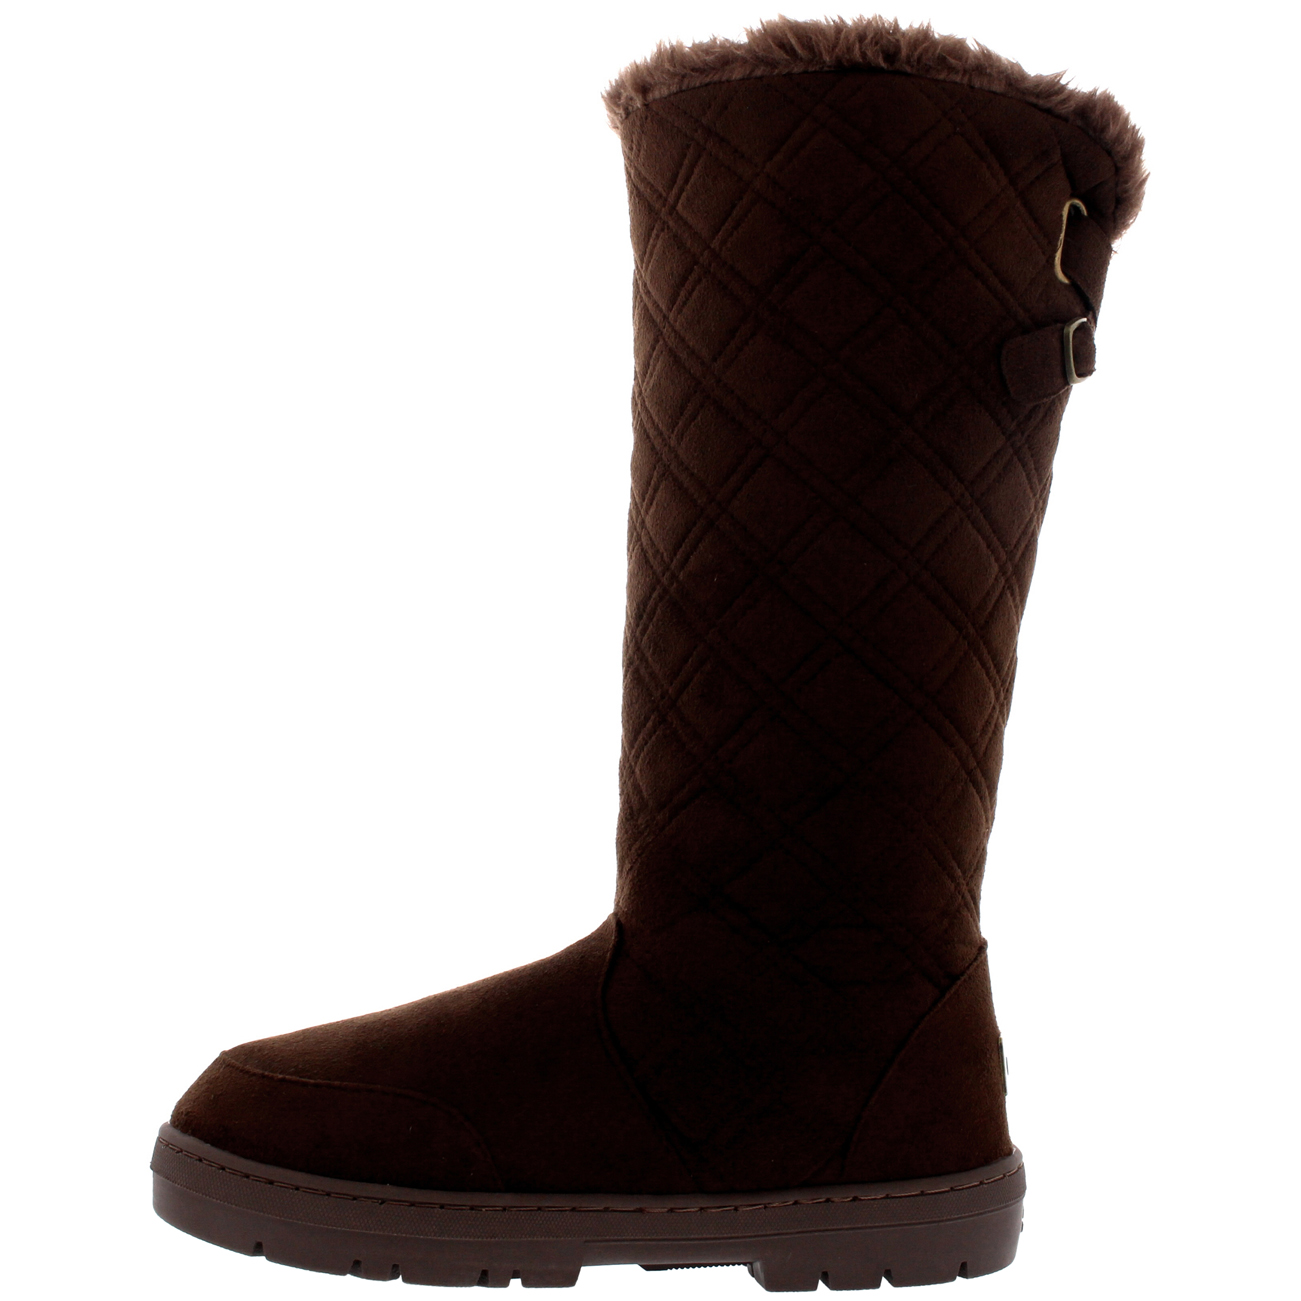 Simple Tall Womens Winter Boots  Boot Yc